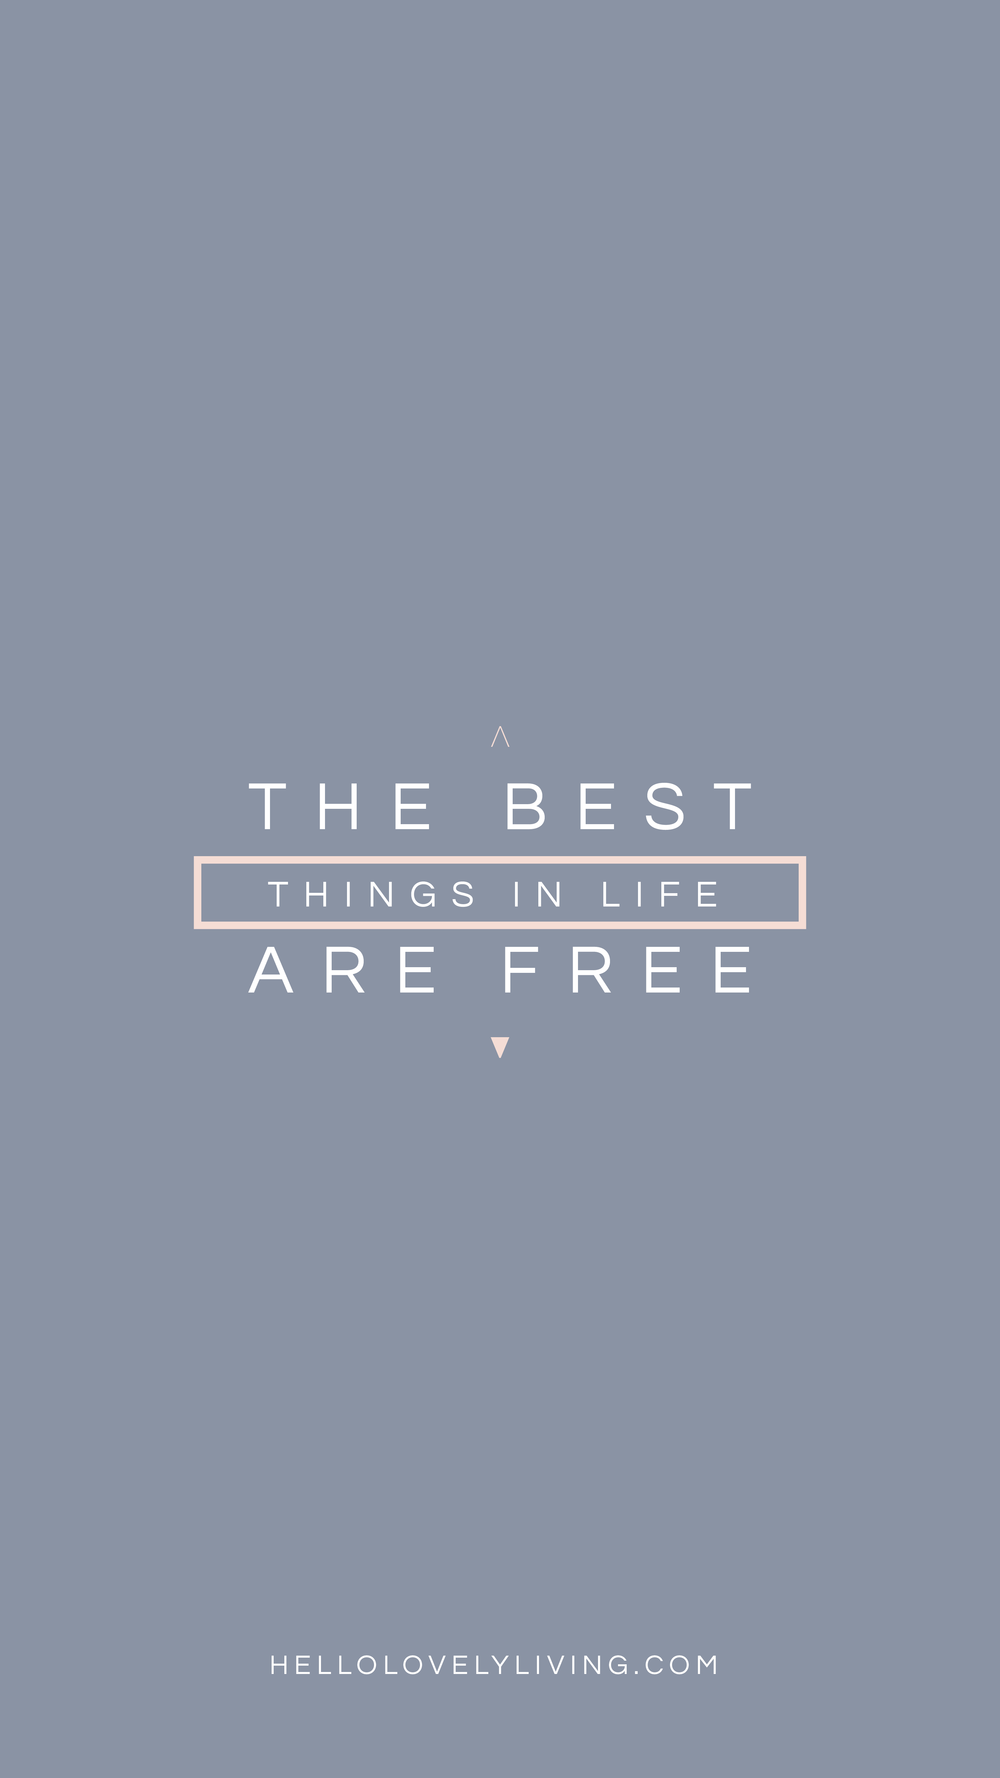 The Best Things In Life Are Free | HelloLovelyLiving.com